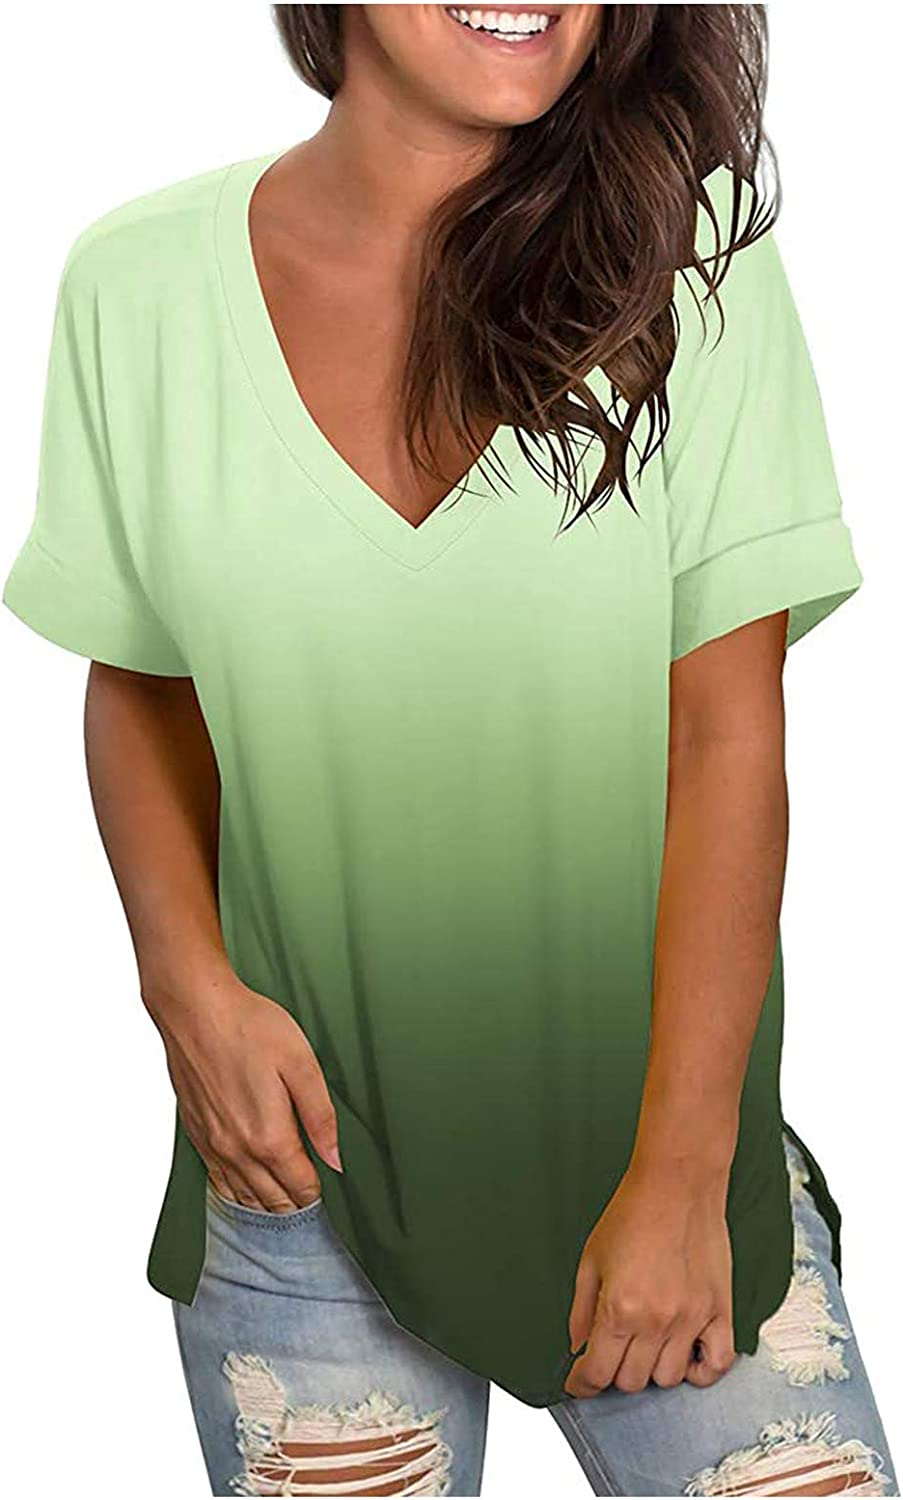 AODONG Summer Tops for Women Short Sleeve, Womens Casual V Neck Gradient T Shirts Graphic Tops Basic Tees Tunic Tops